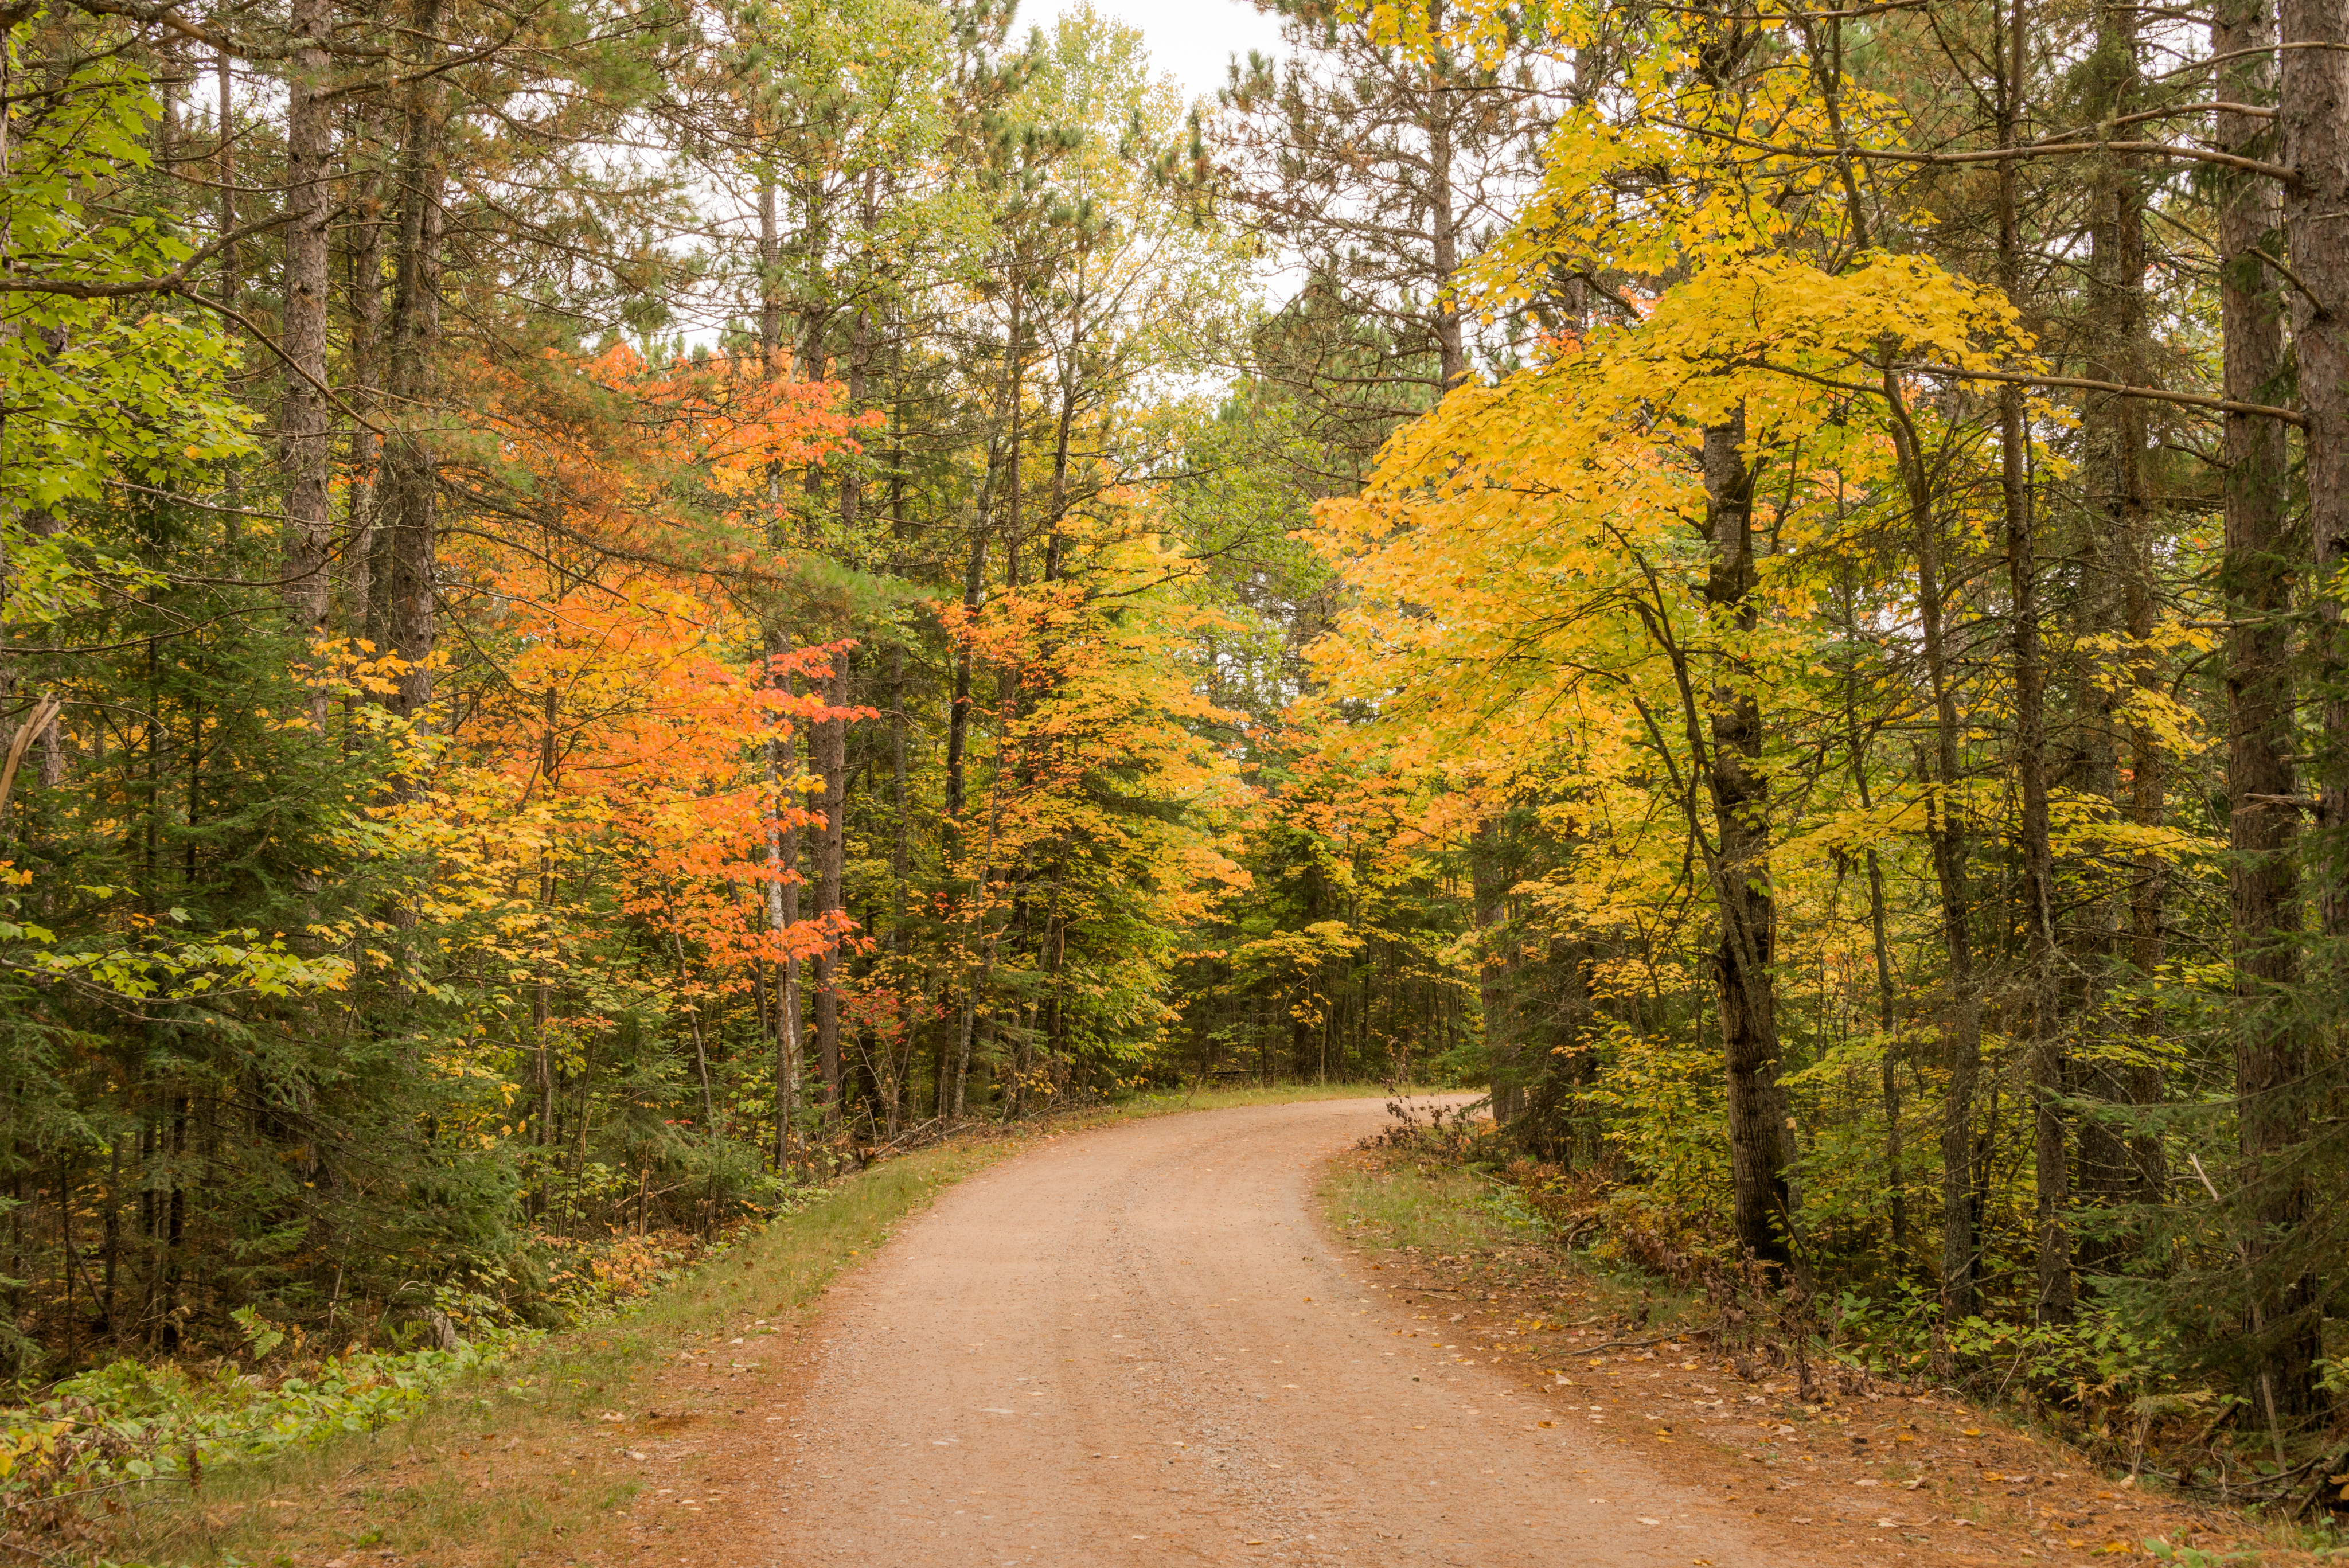 Big Lake Access Road on the Echo Trail